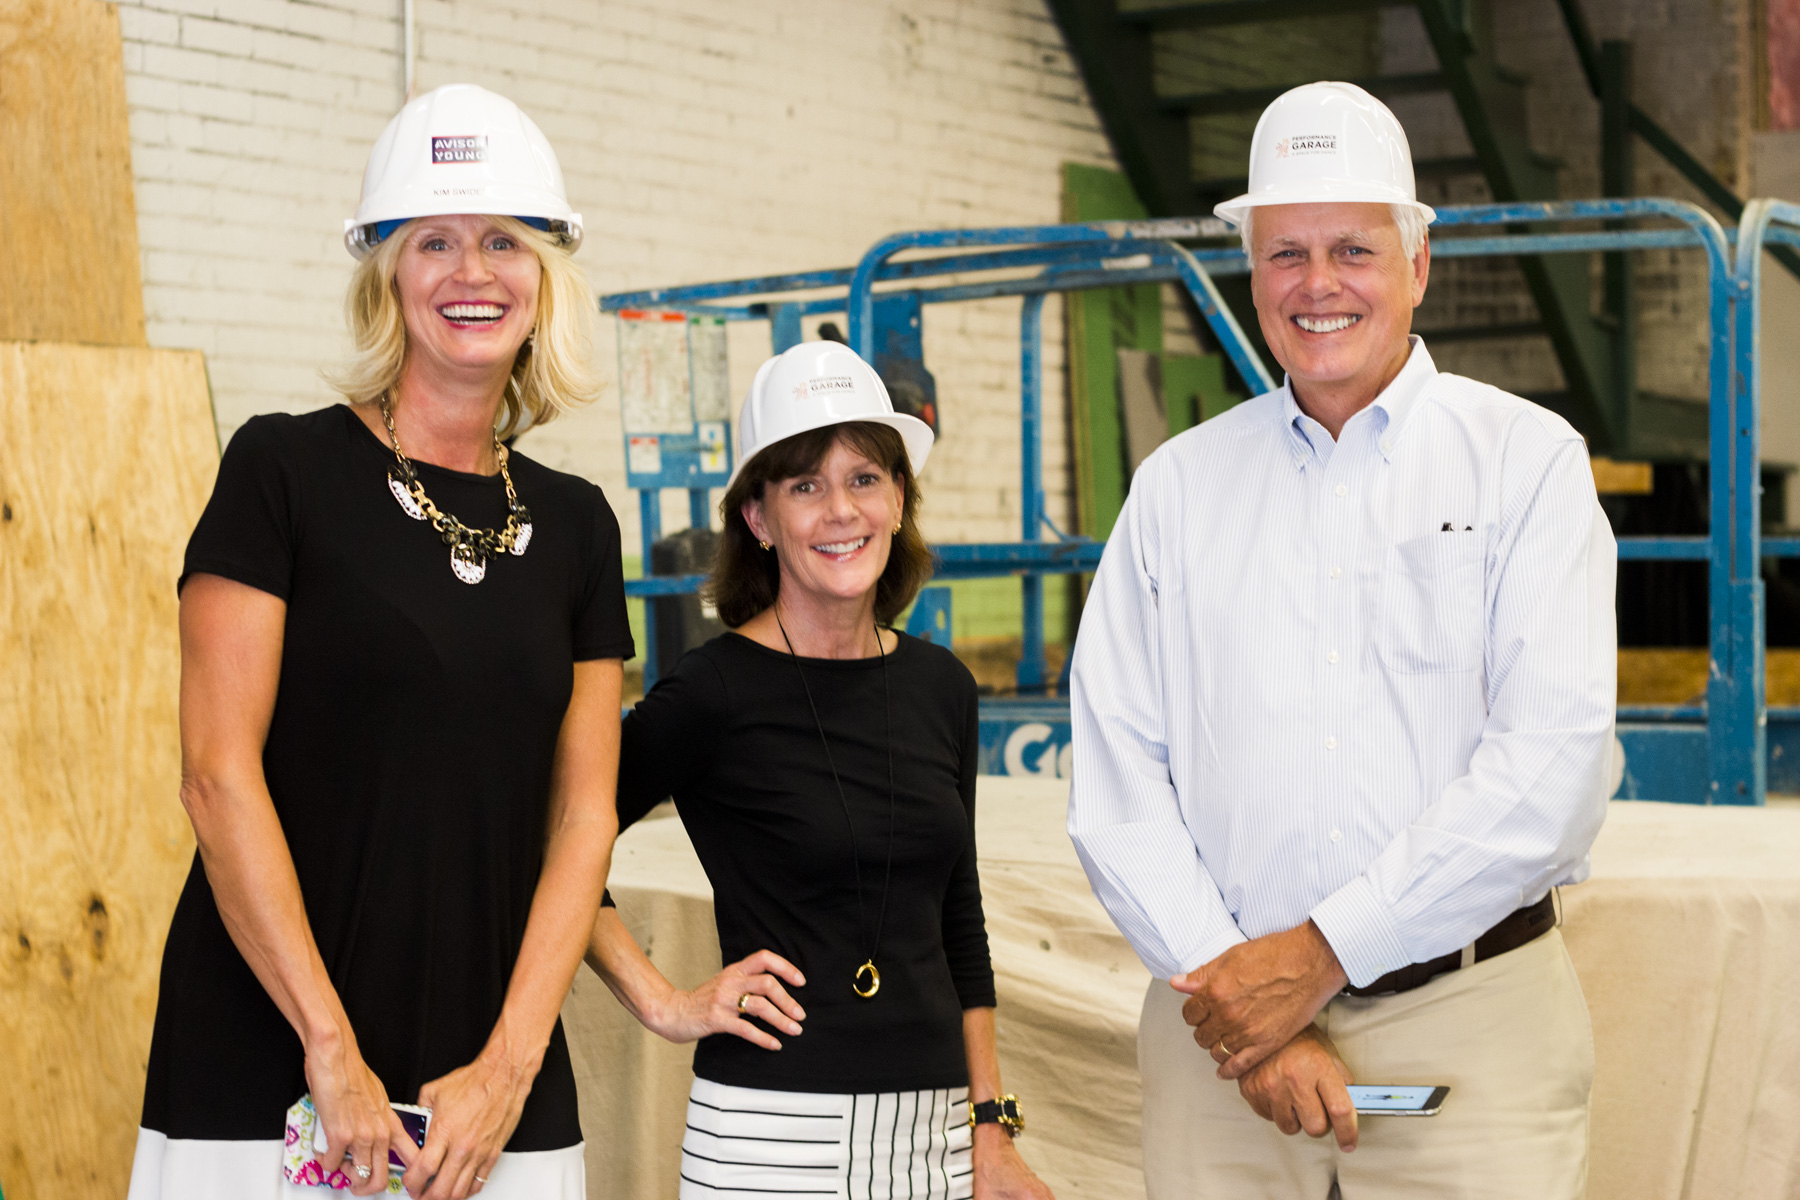 Avison Young Project Managers